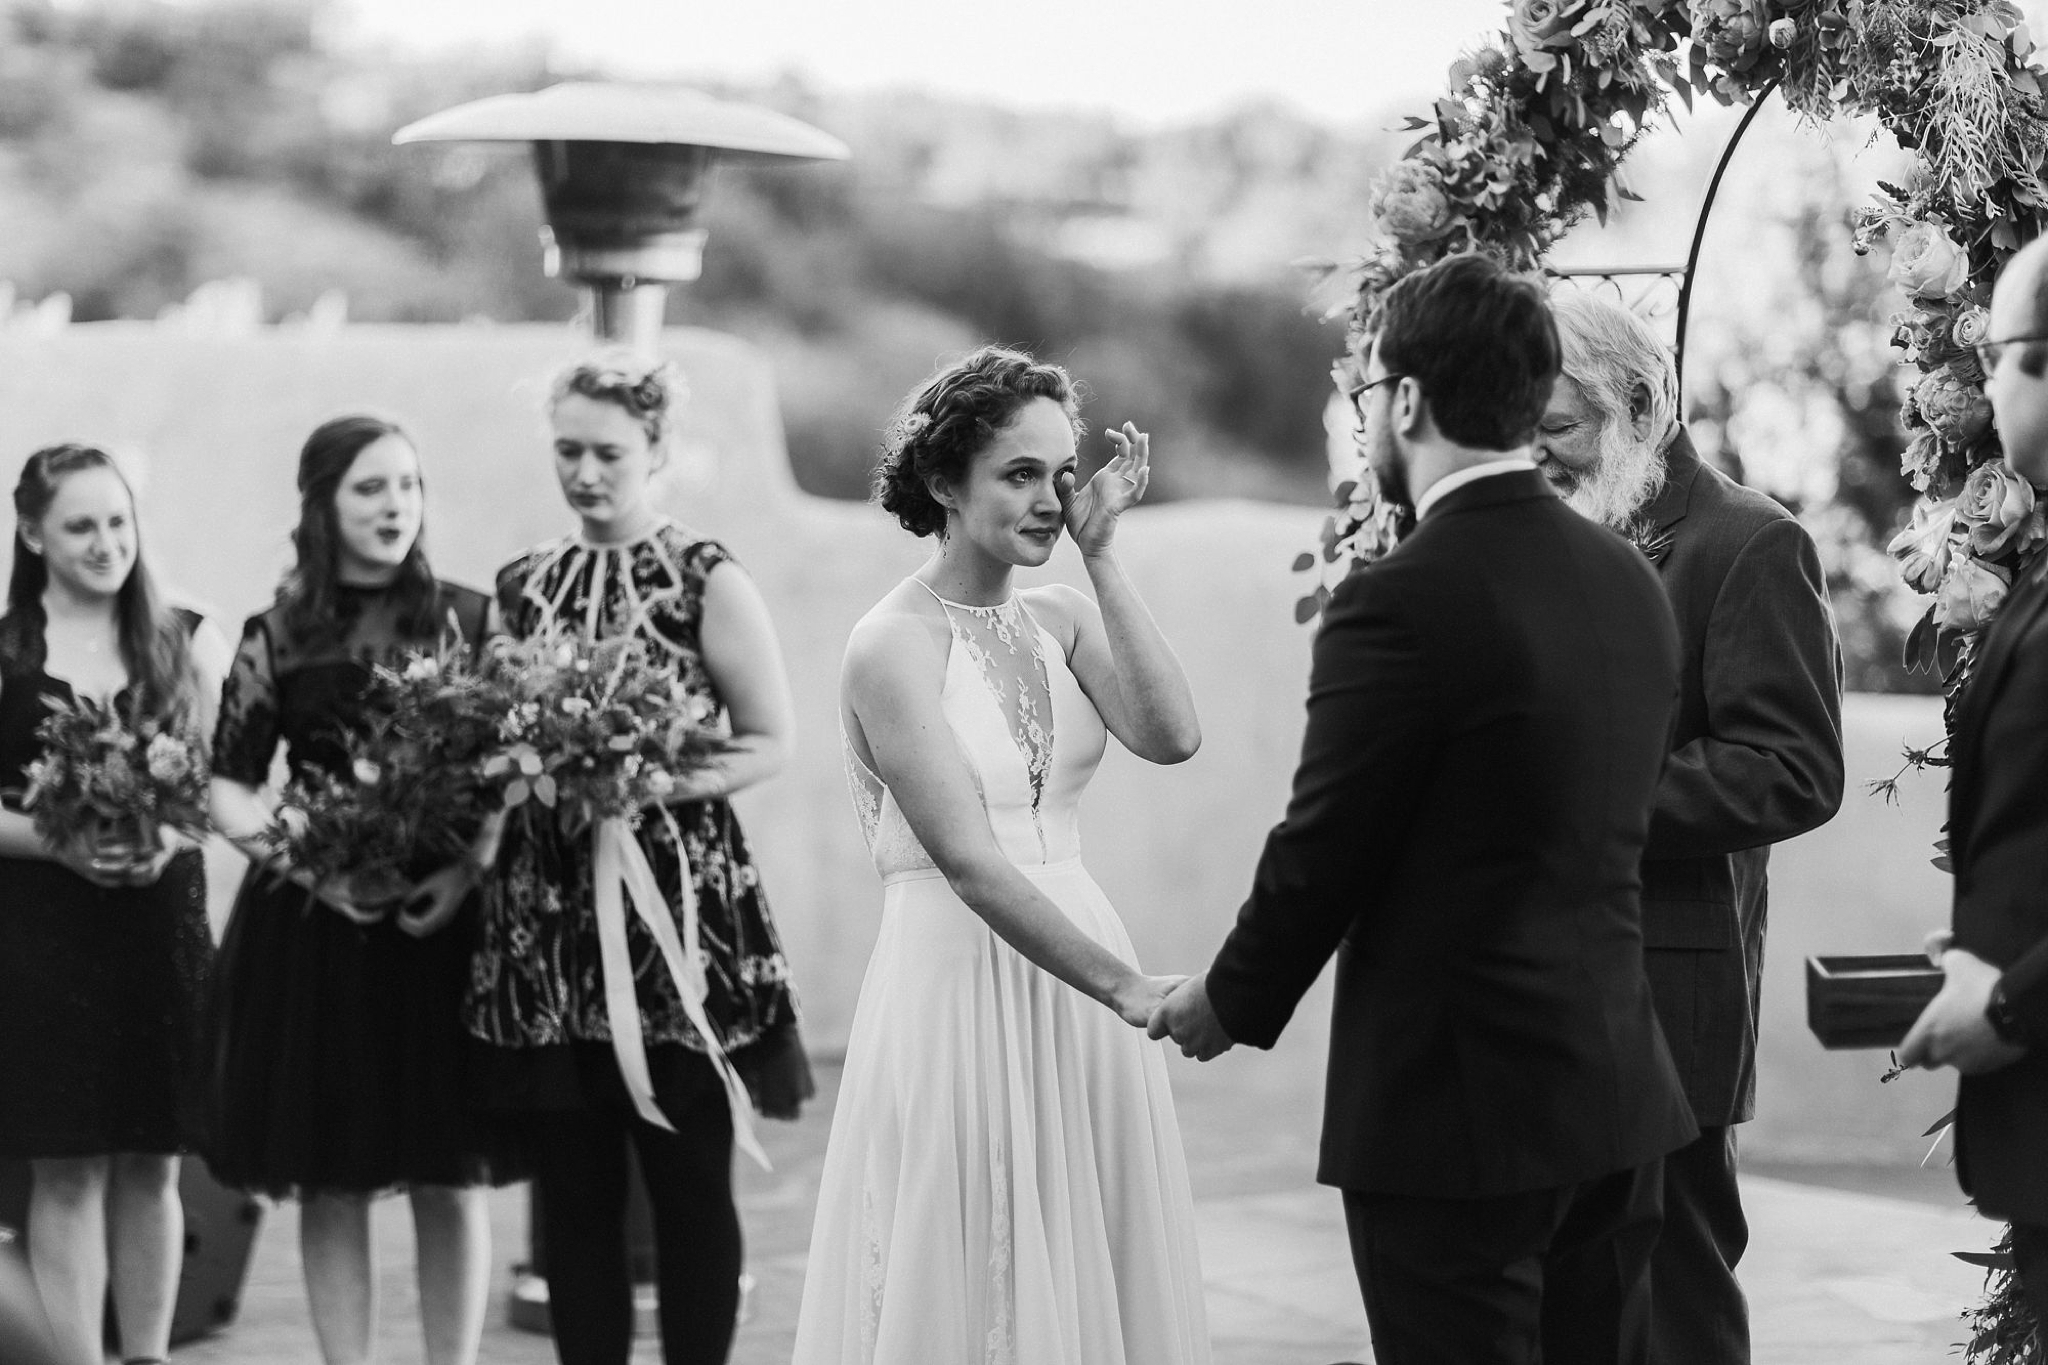 Alicia+lucia+photography+-+albuquerque+wedding+photographer+-+santa+fe+wedding+photography+-+new+mexico+wedding+photographer+-+new+mexico+wedding+-+wedding+vows+-+writing+your+own+vows+-+wedding+inspo_0029.jpg